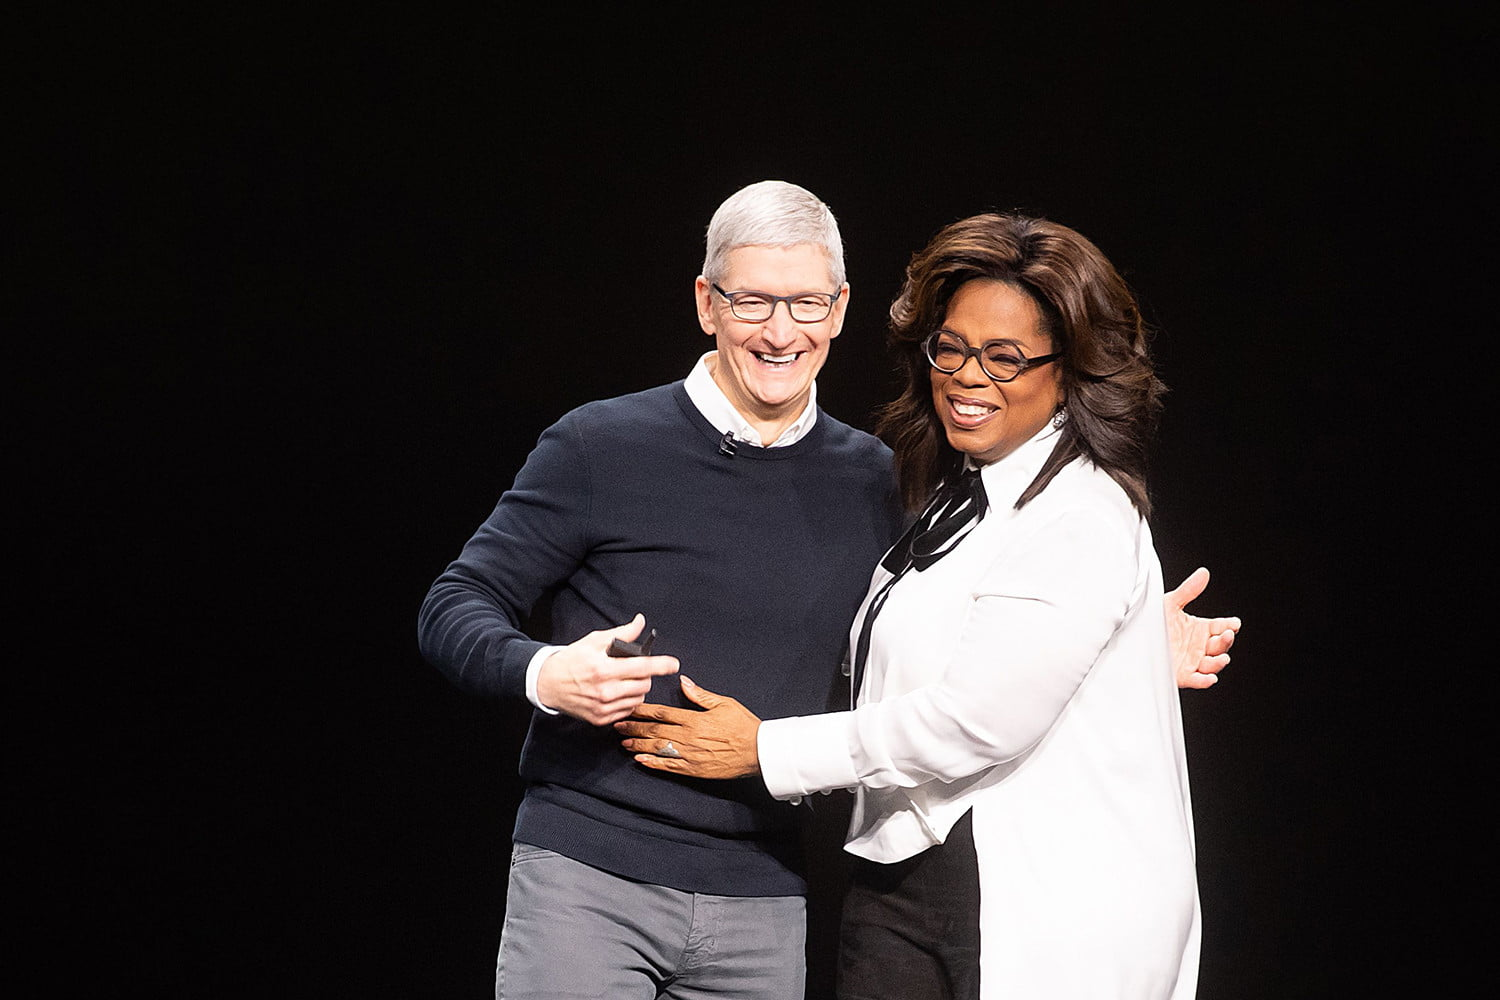 Yesterday's Apple event was a whiplash inducing parade of copycat services